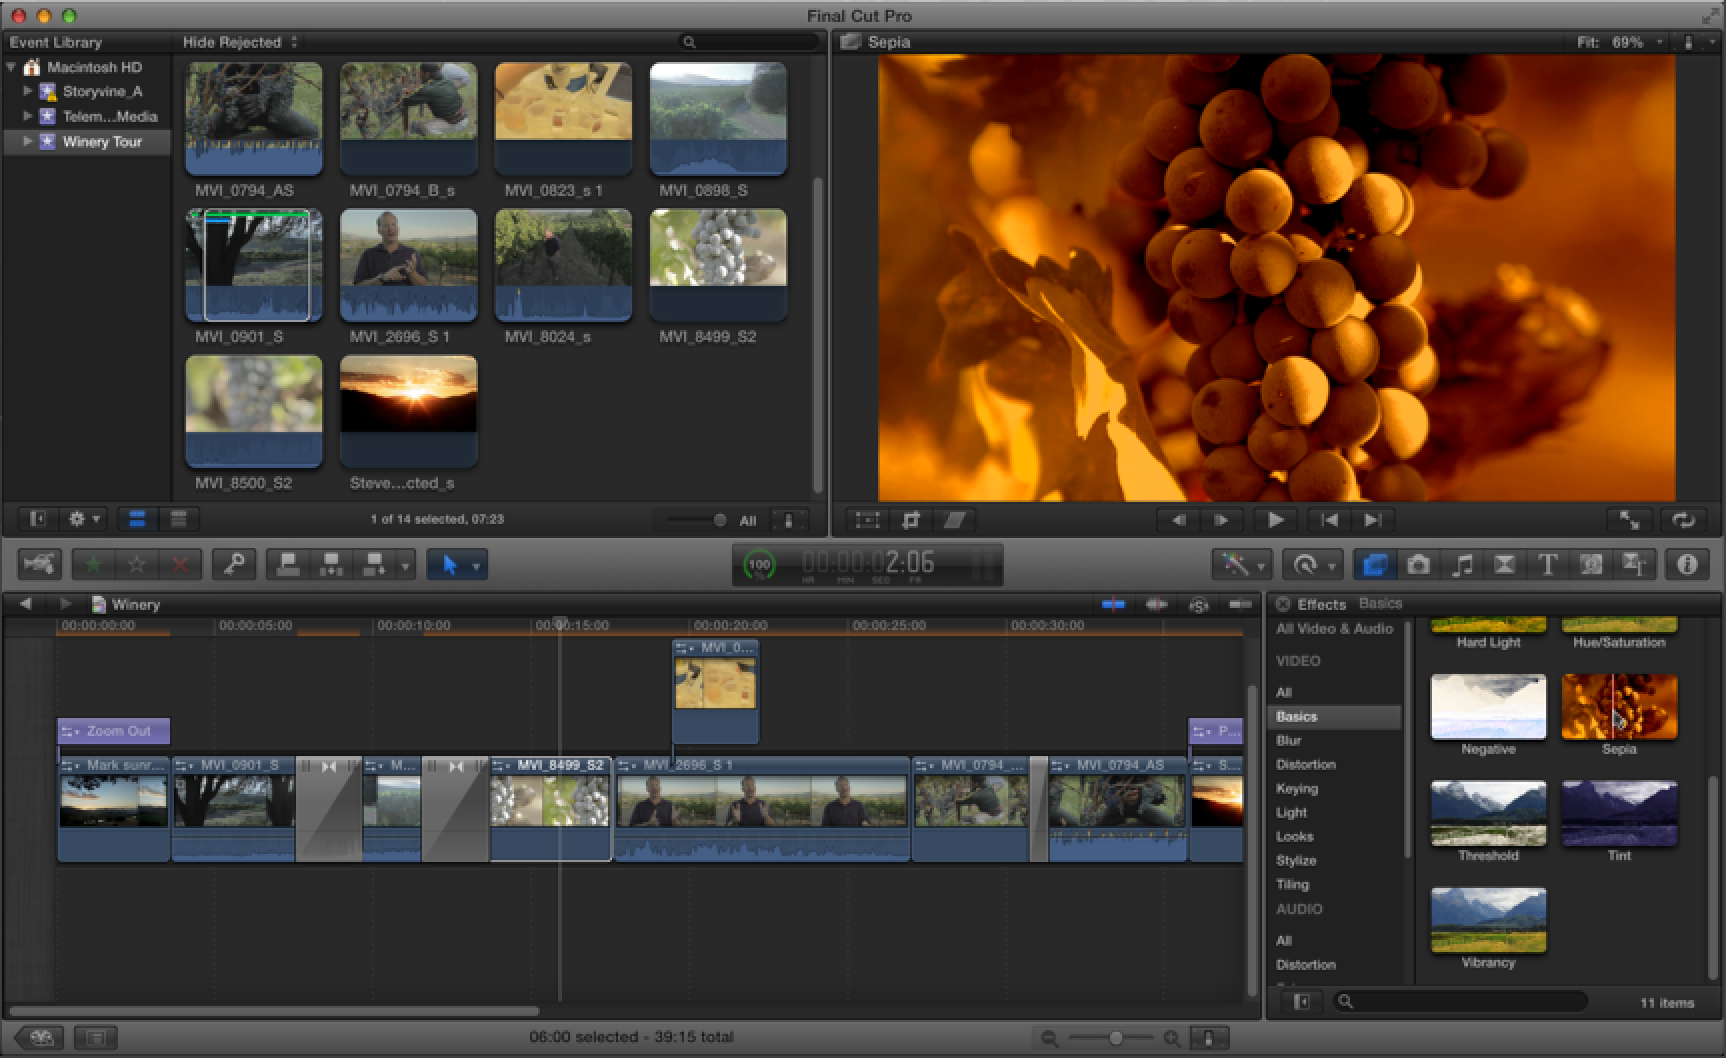 How to apply special effects to your videos in Final Cut Pro